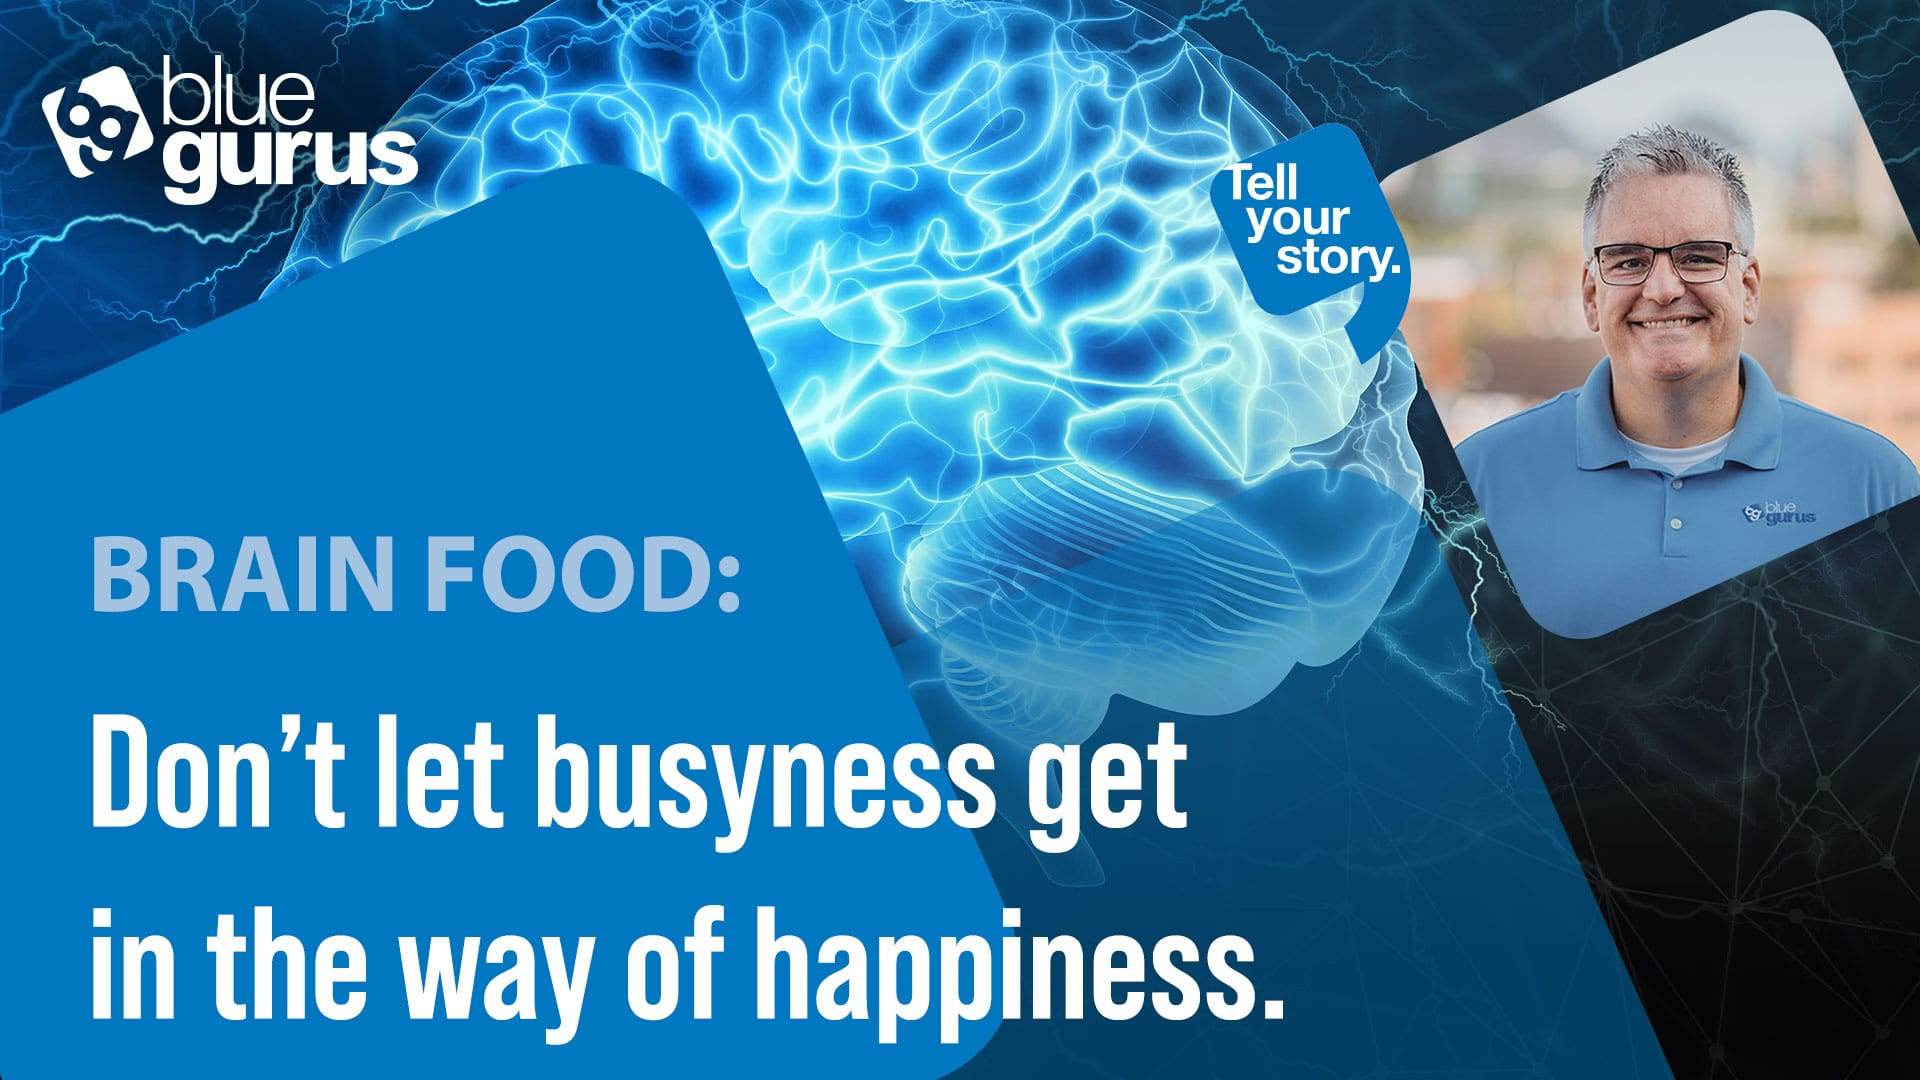 Don't let busyness get in the way of happiness.